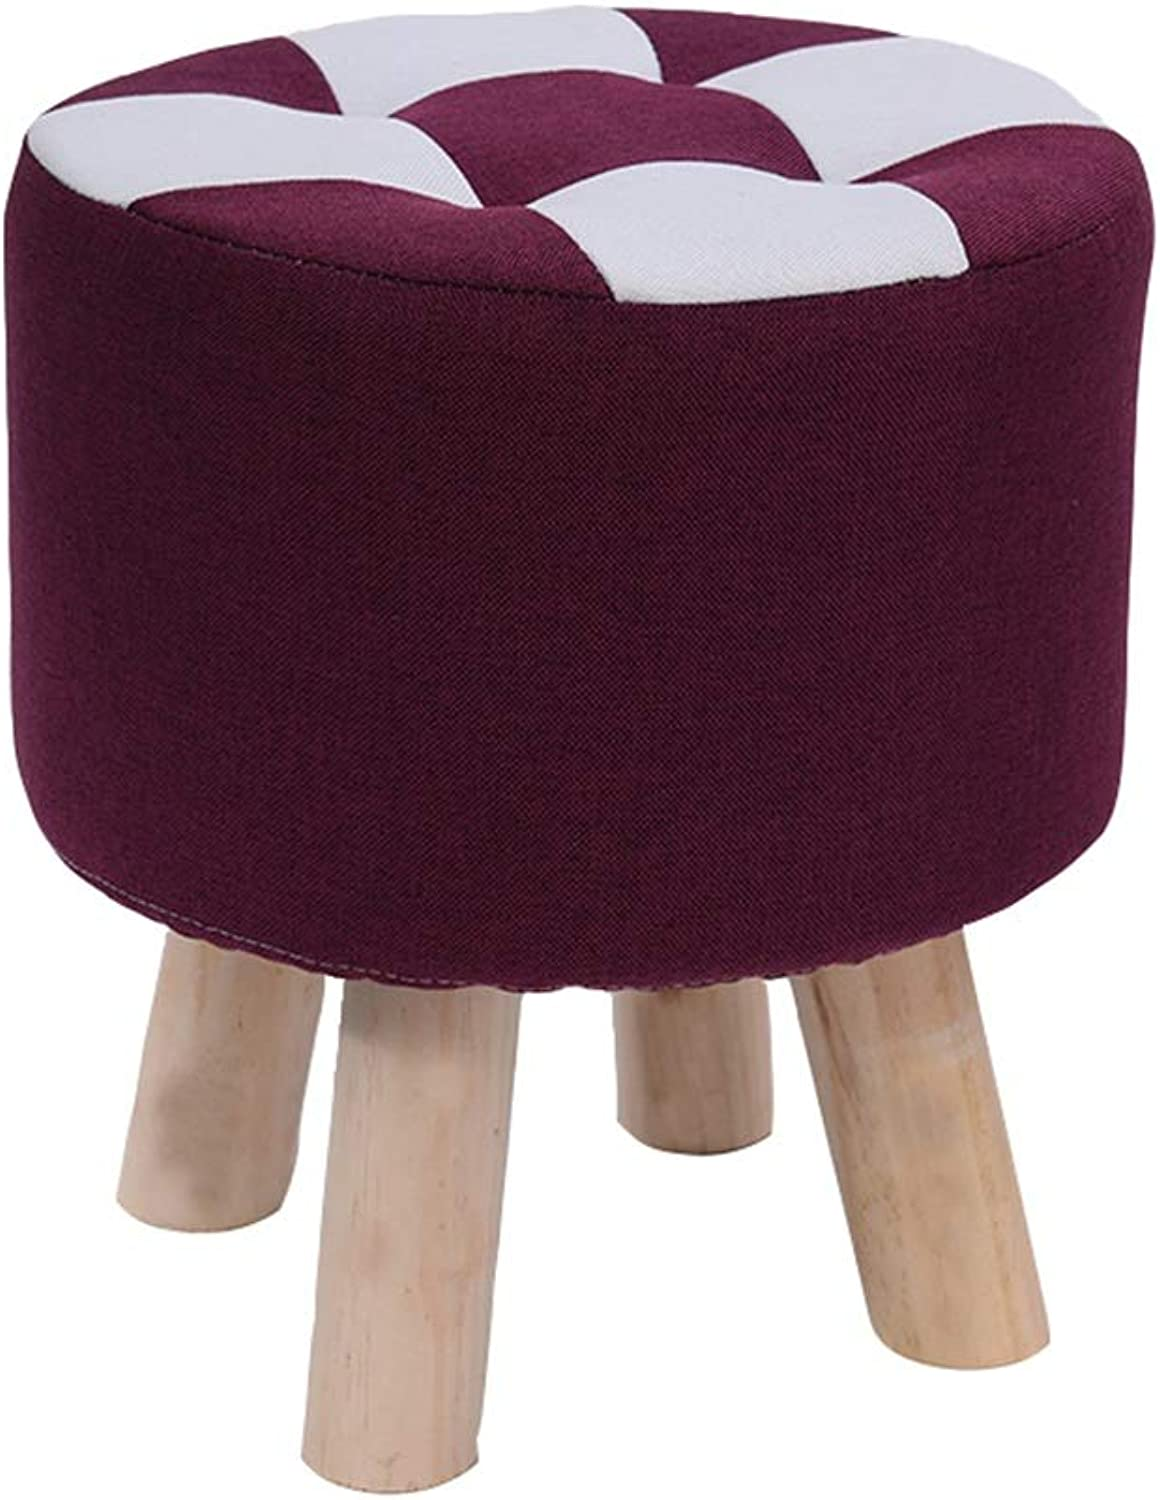 XRXY Footstool, Small Bench, Living Room Leisure Sofa Stool, Solid Wood Low Stool, Cloth Foyer Changing His shoes Stool, 28 35 cm Height, 9 colors (color   Purple, Size   31  35cm)